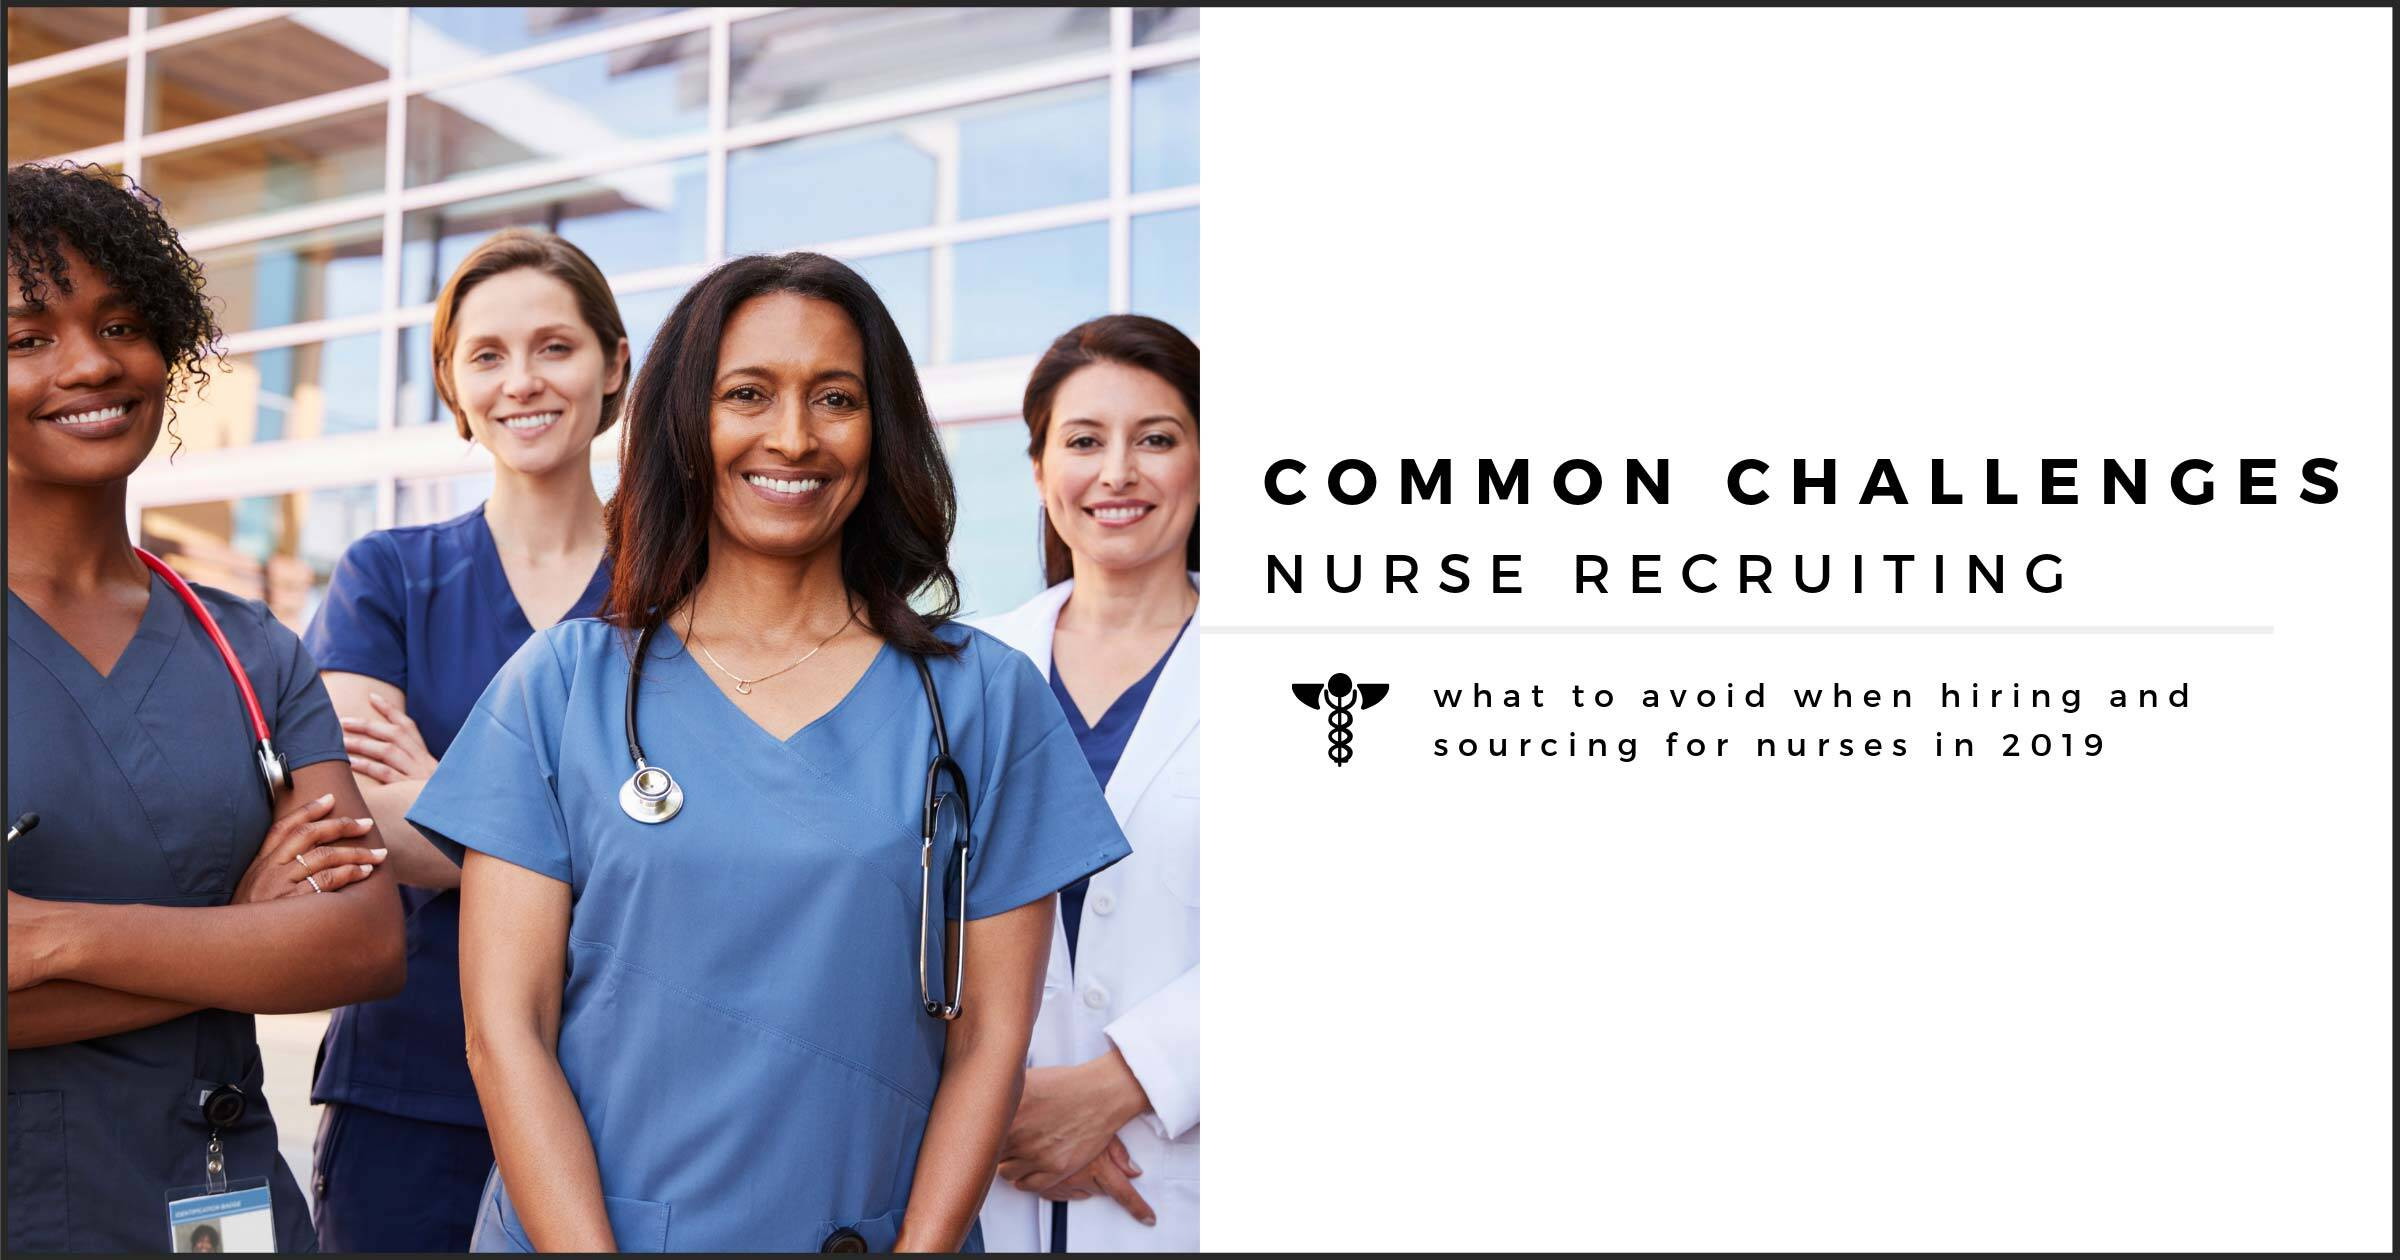 Common Challenges for Nurse Recruiters in 2019